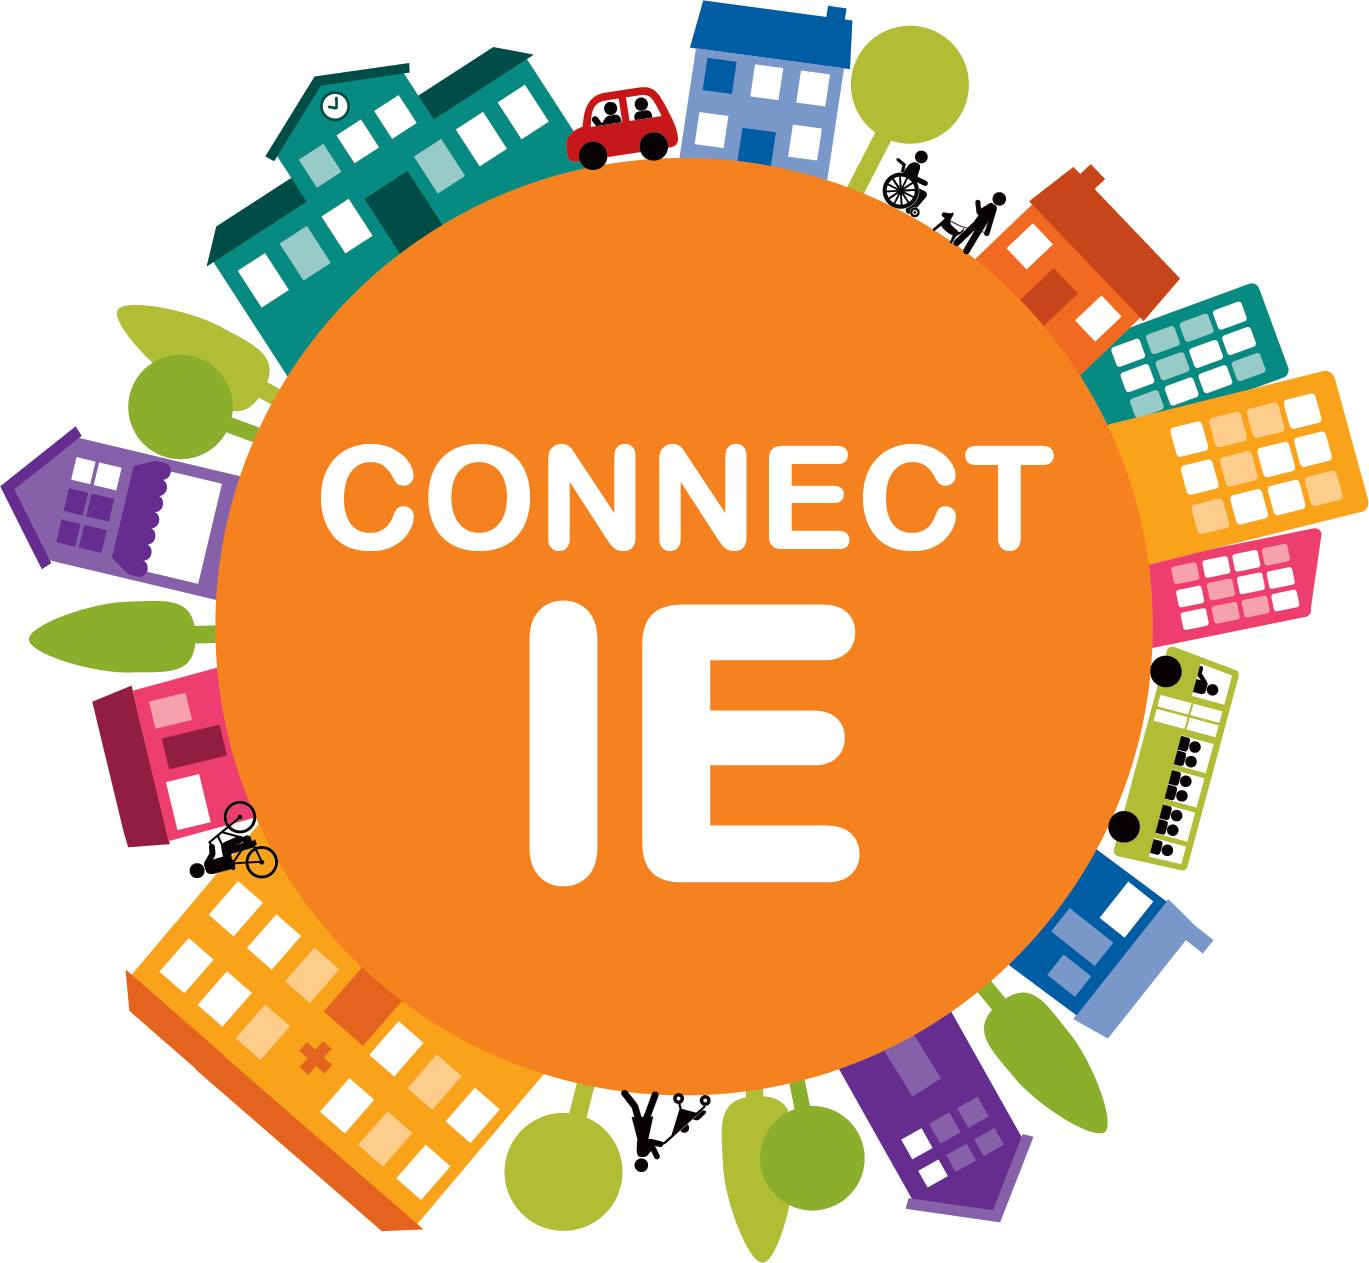 Connect IE Logo